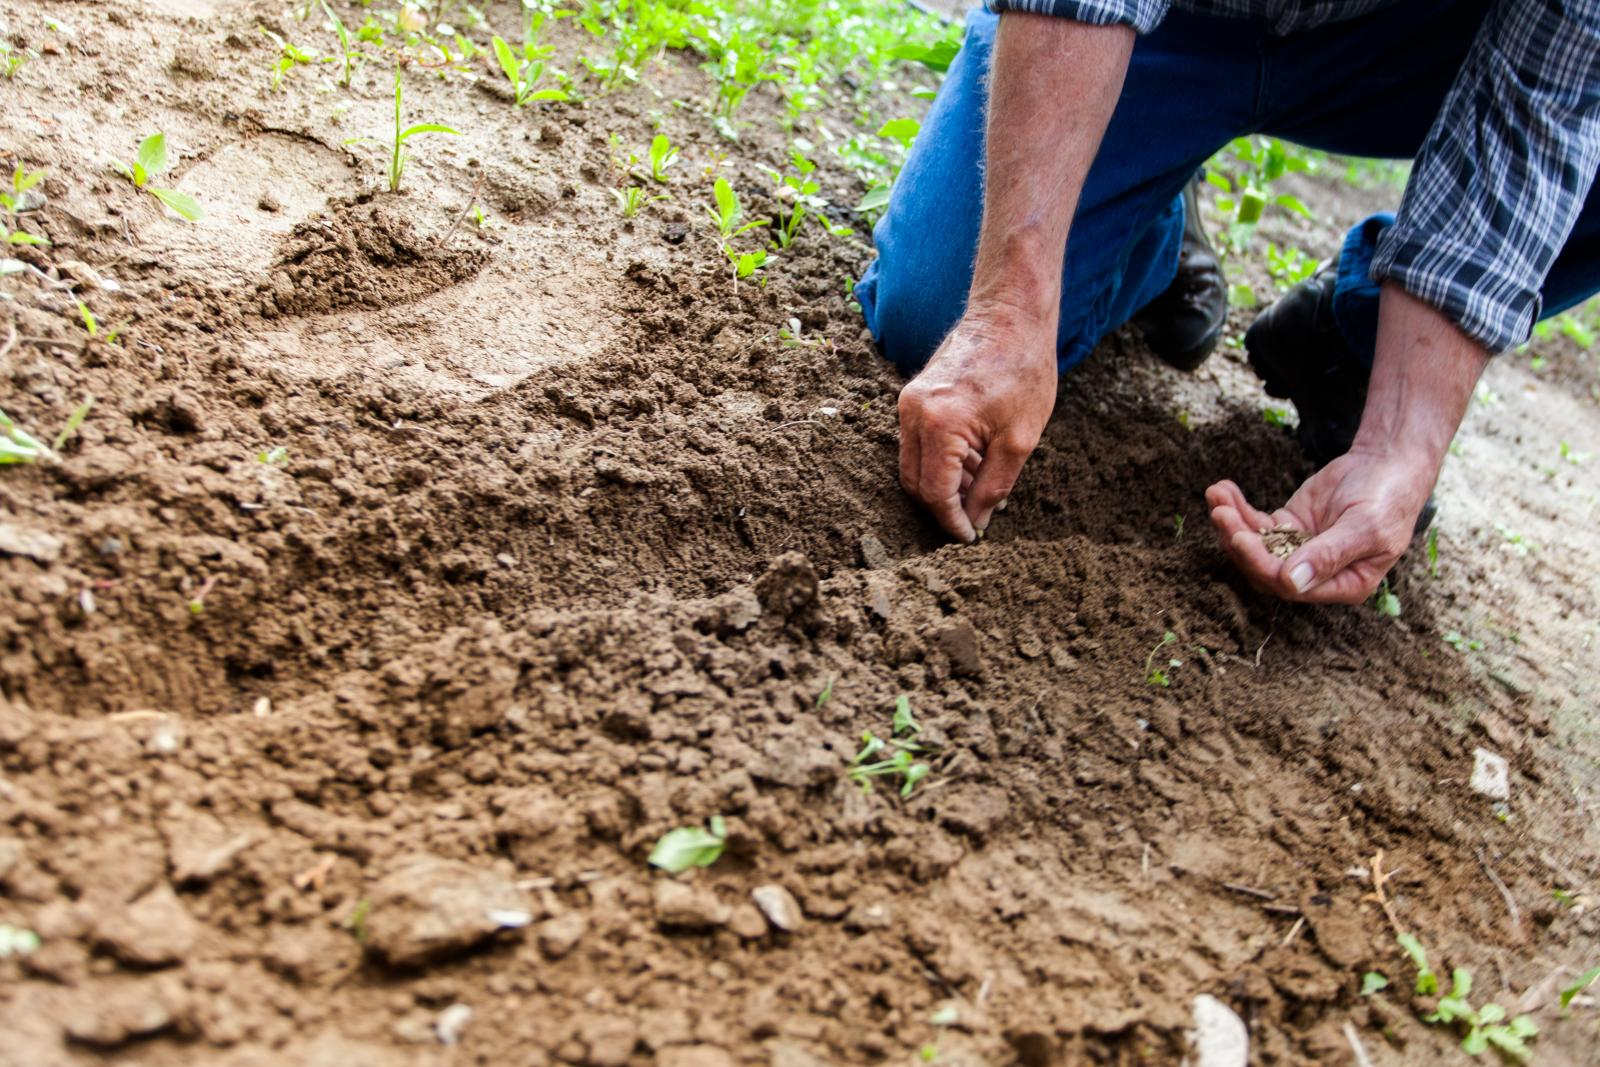 Man planting seeds. Photo credit: Pexels